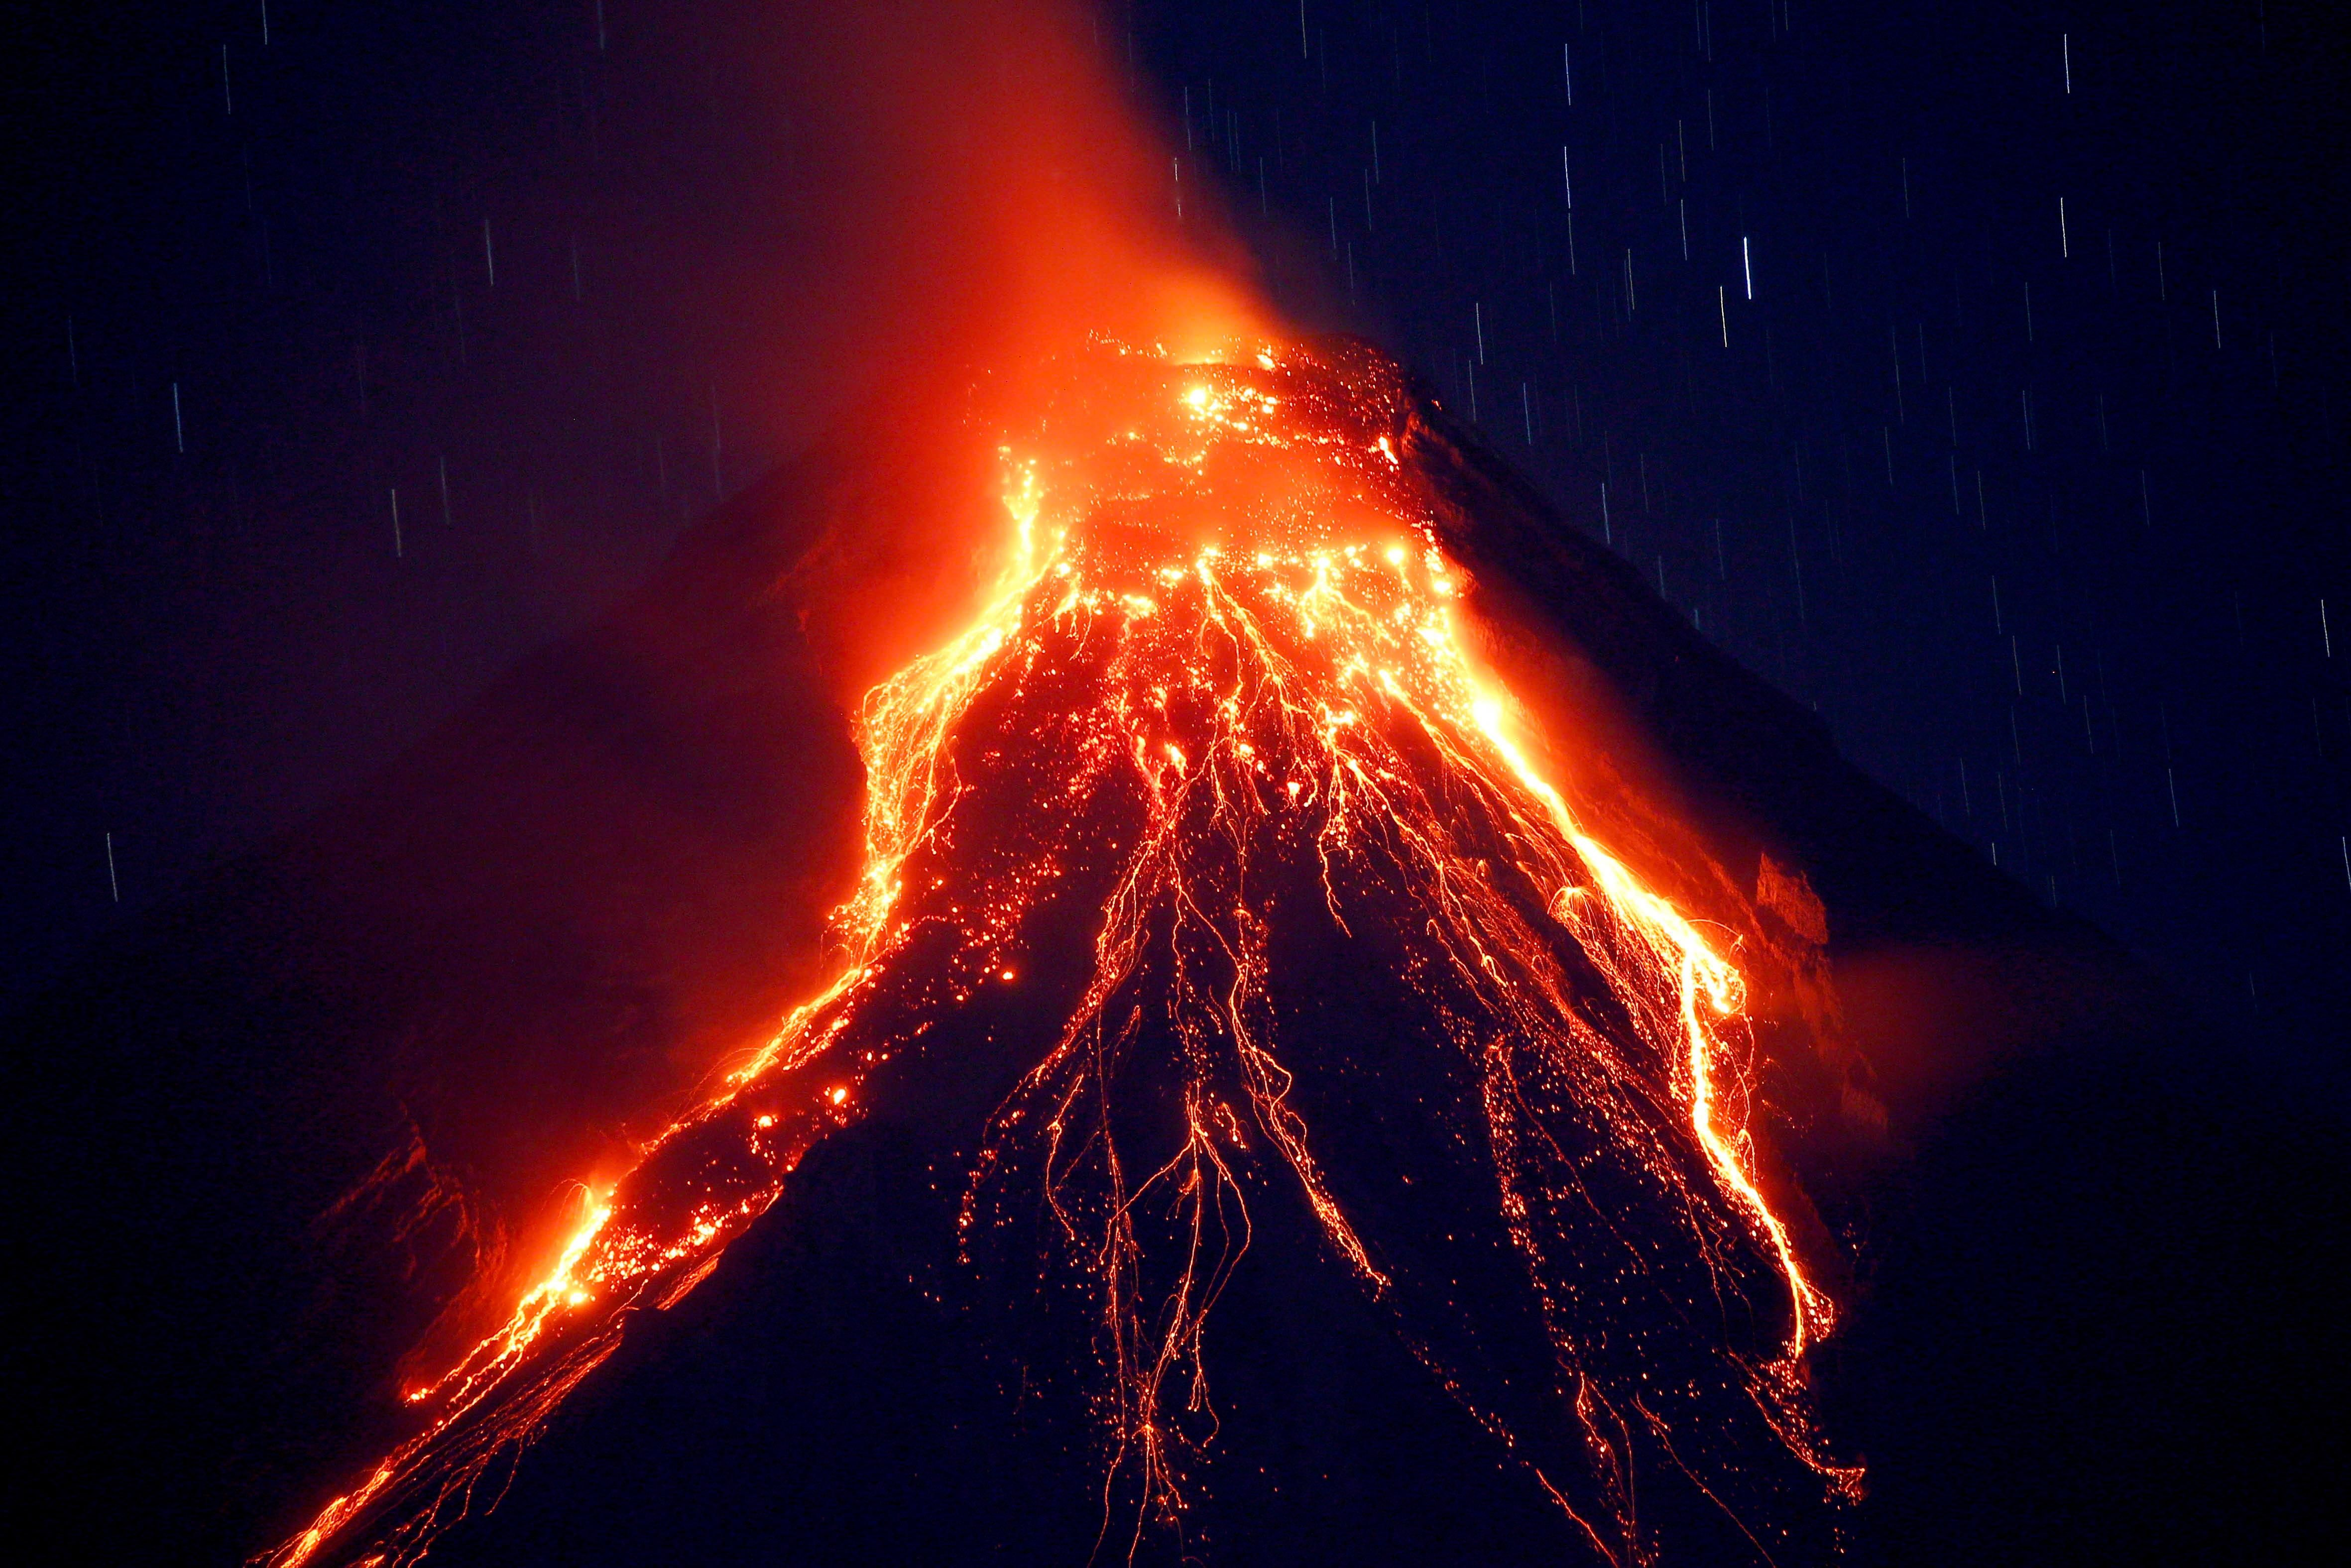 Lava Cascades Down The Slopes Of Mayon Volcano During Its Eruption For The Second Straight Day Tuesday Jan 23 2018 As S Volcano Photos Japan Volcano Volcano